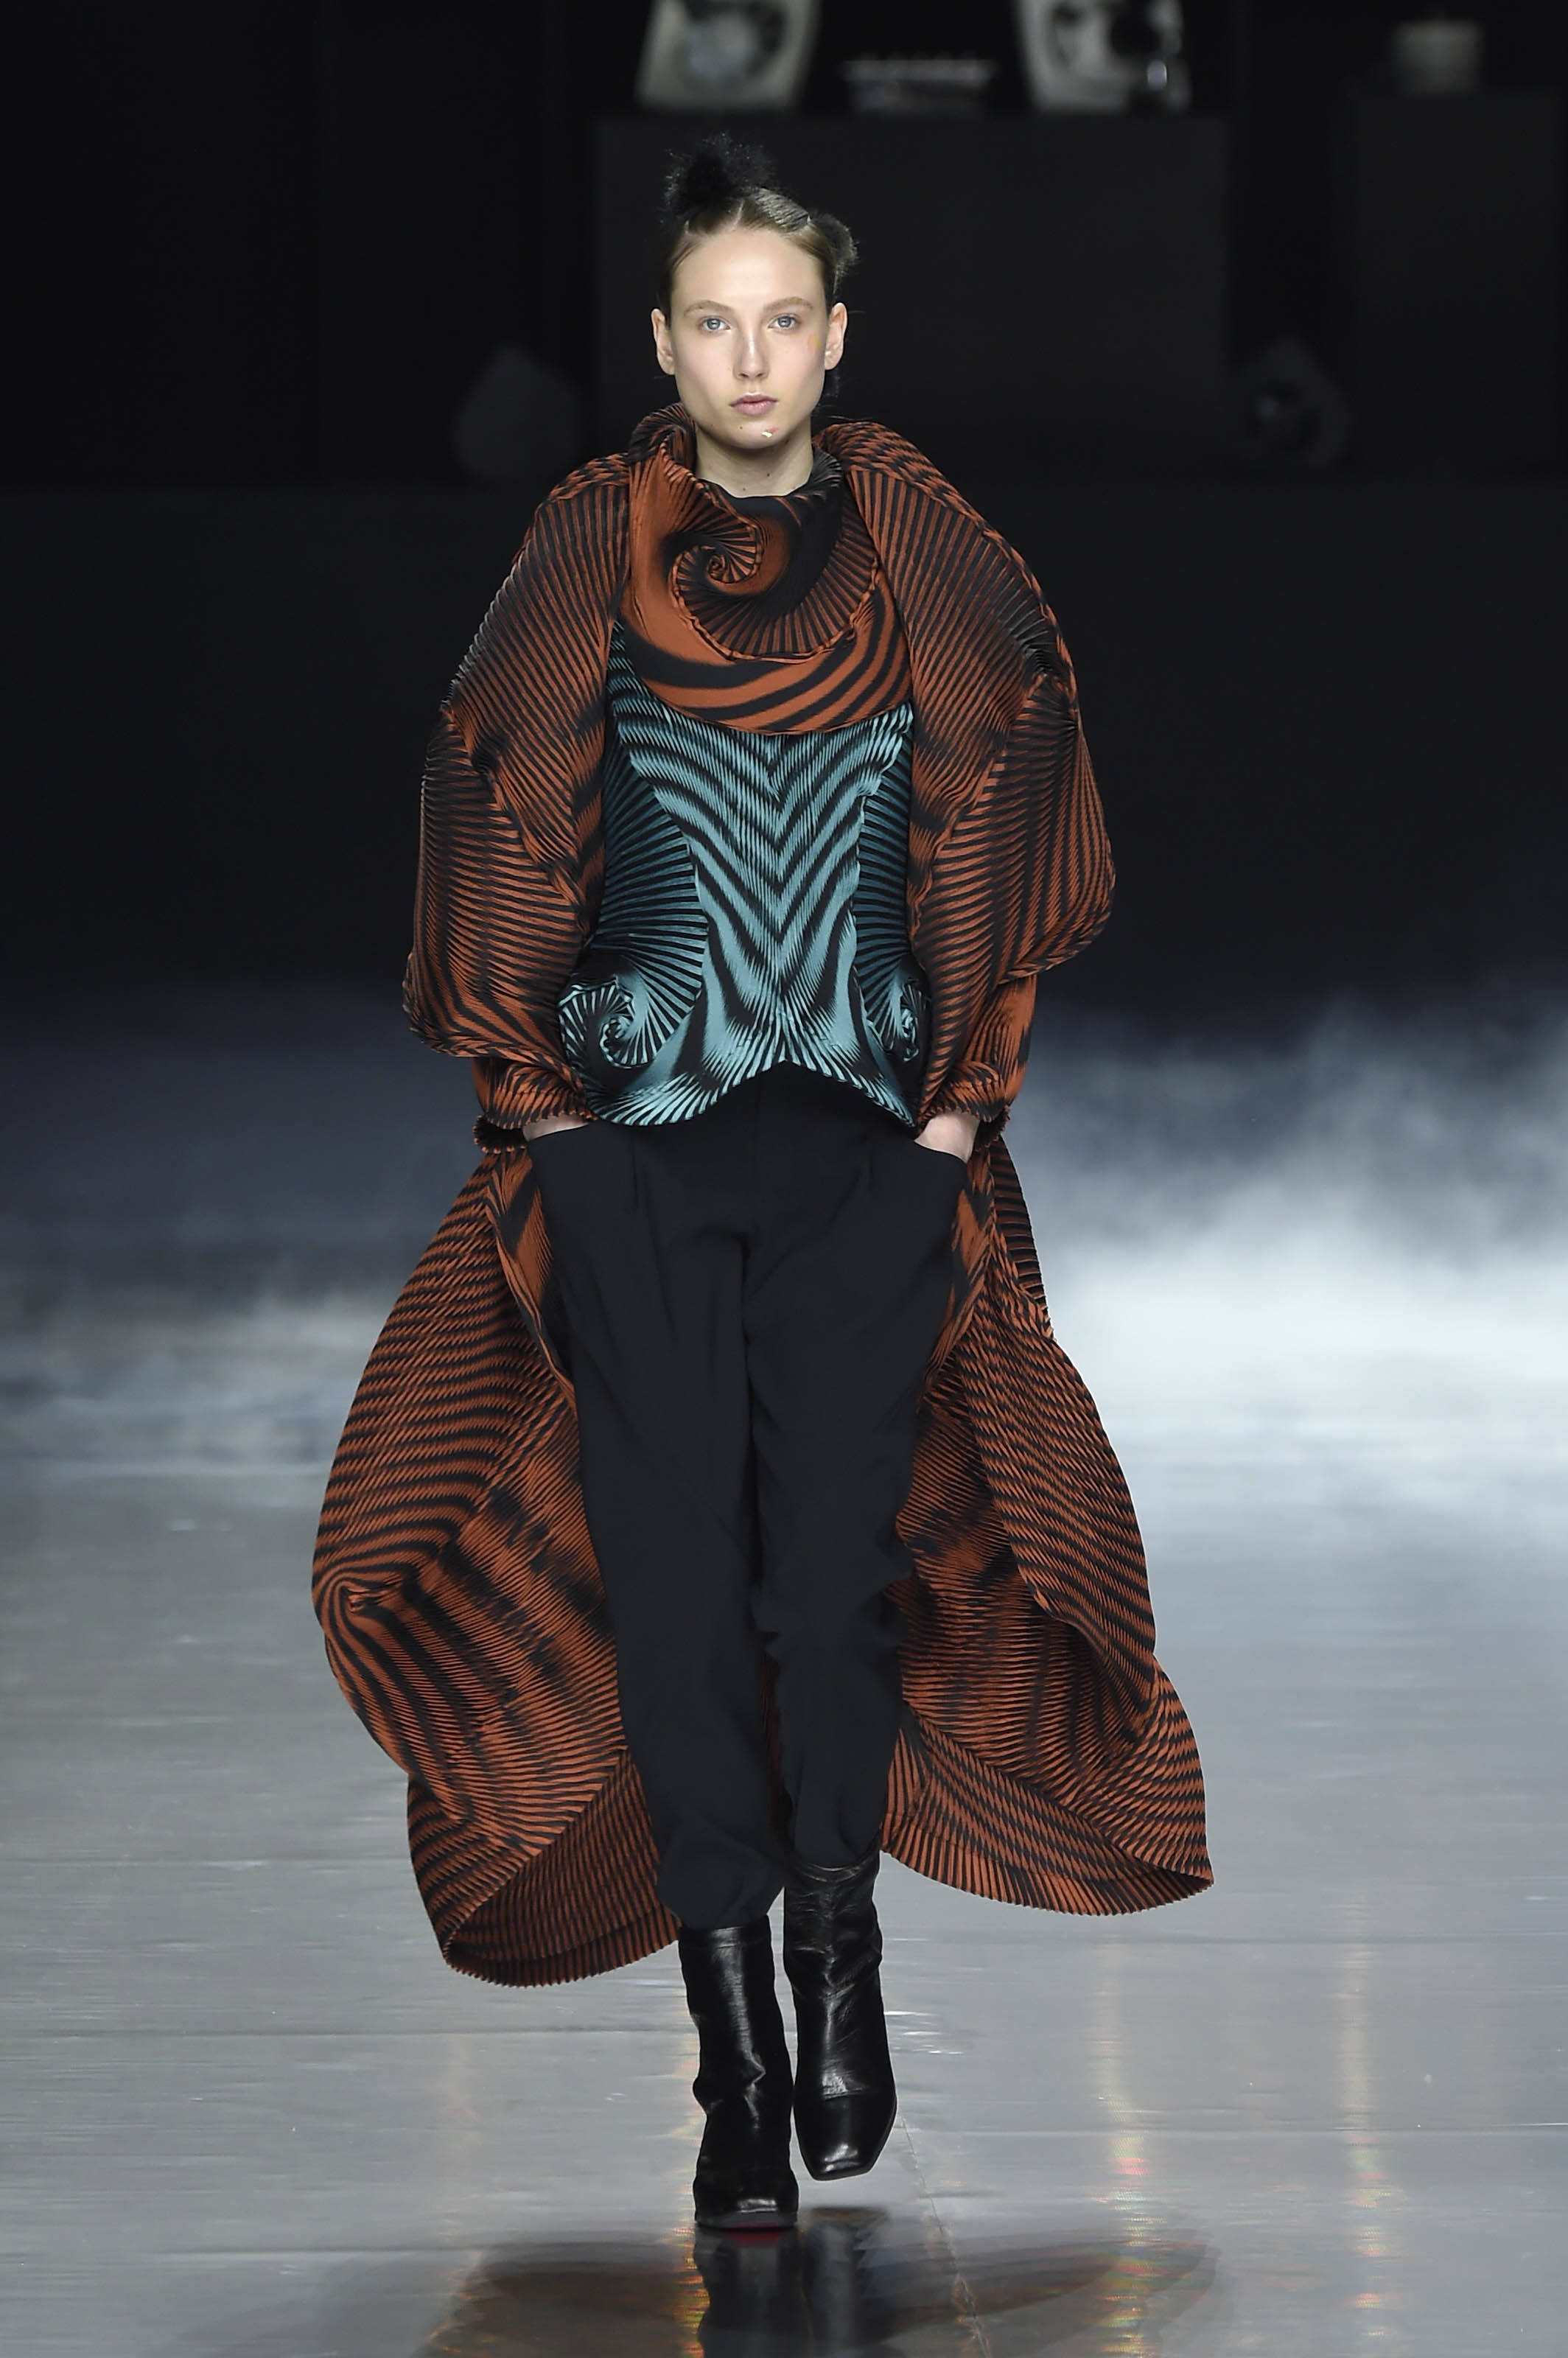 ASVOF-2016-03-05-A piece of cloth at Issey Miyake by Lily Templeton-Lily Templeton-1622067054.jpg